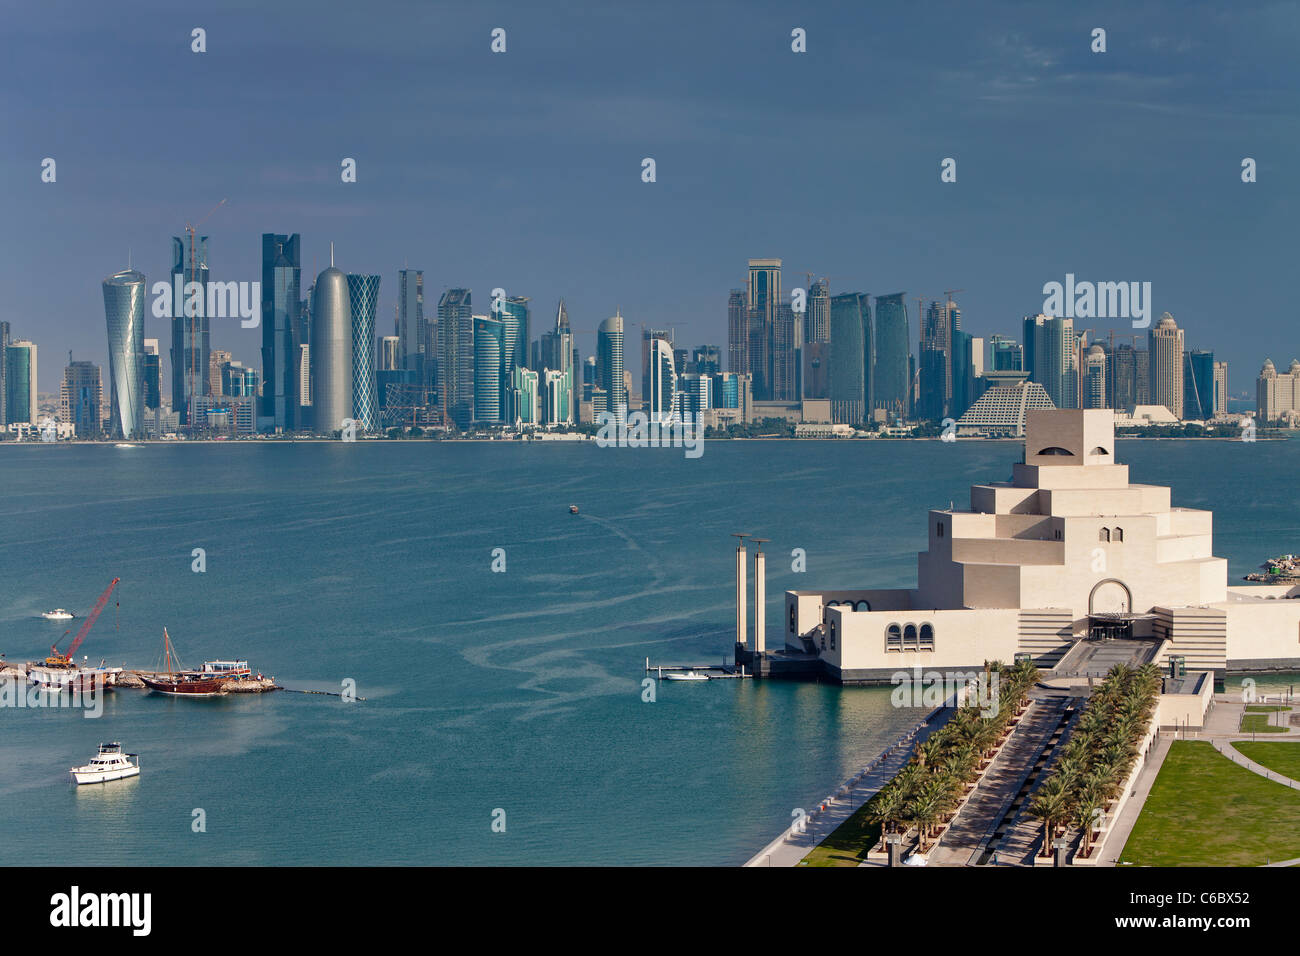 Qatar, Middle East, Arabian Peninsula, Doha, Elevated view over the Museum of Islamic Art and the Dhow harbour - Stock Image